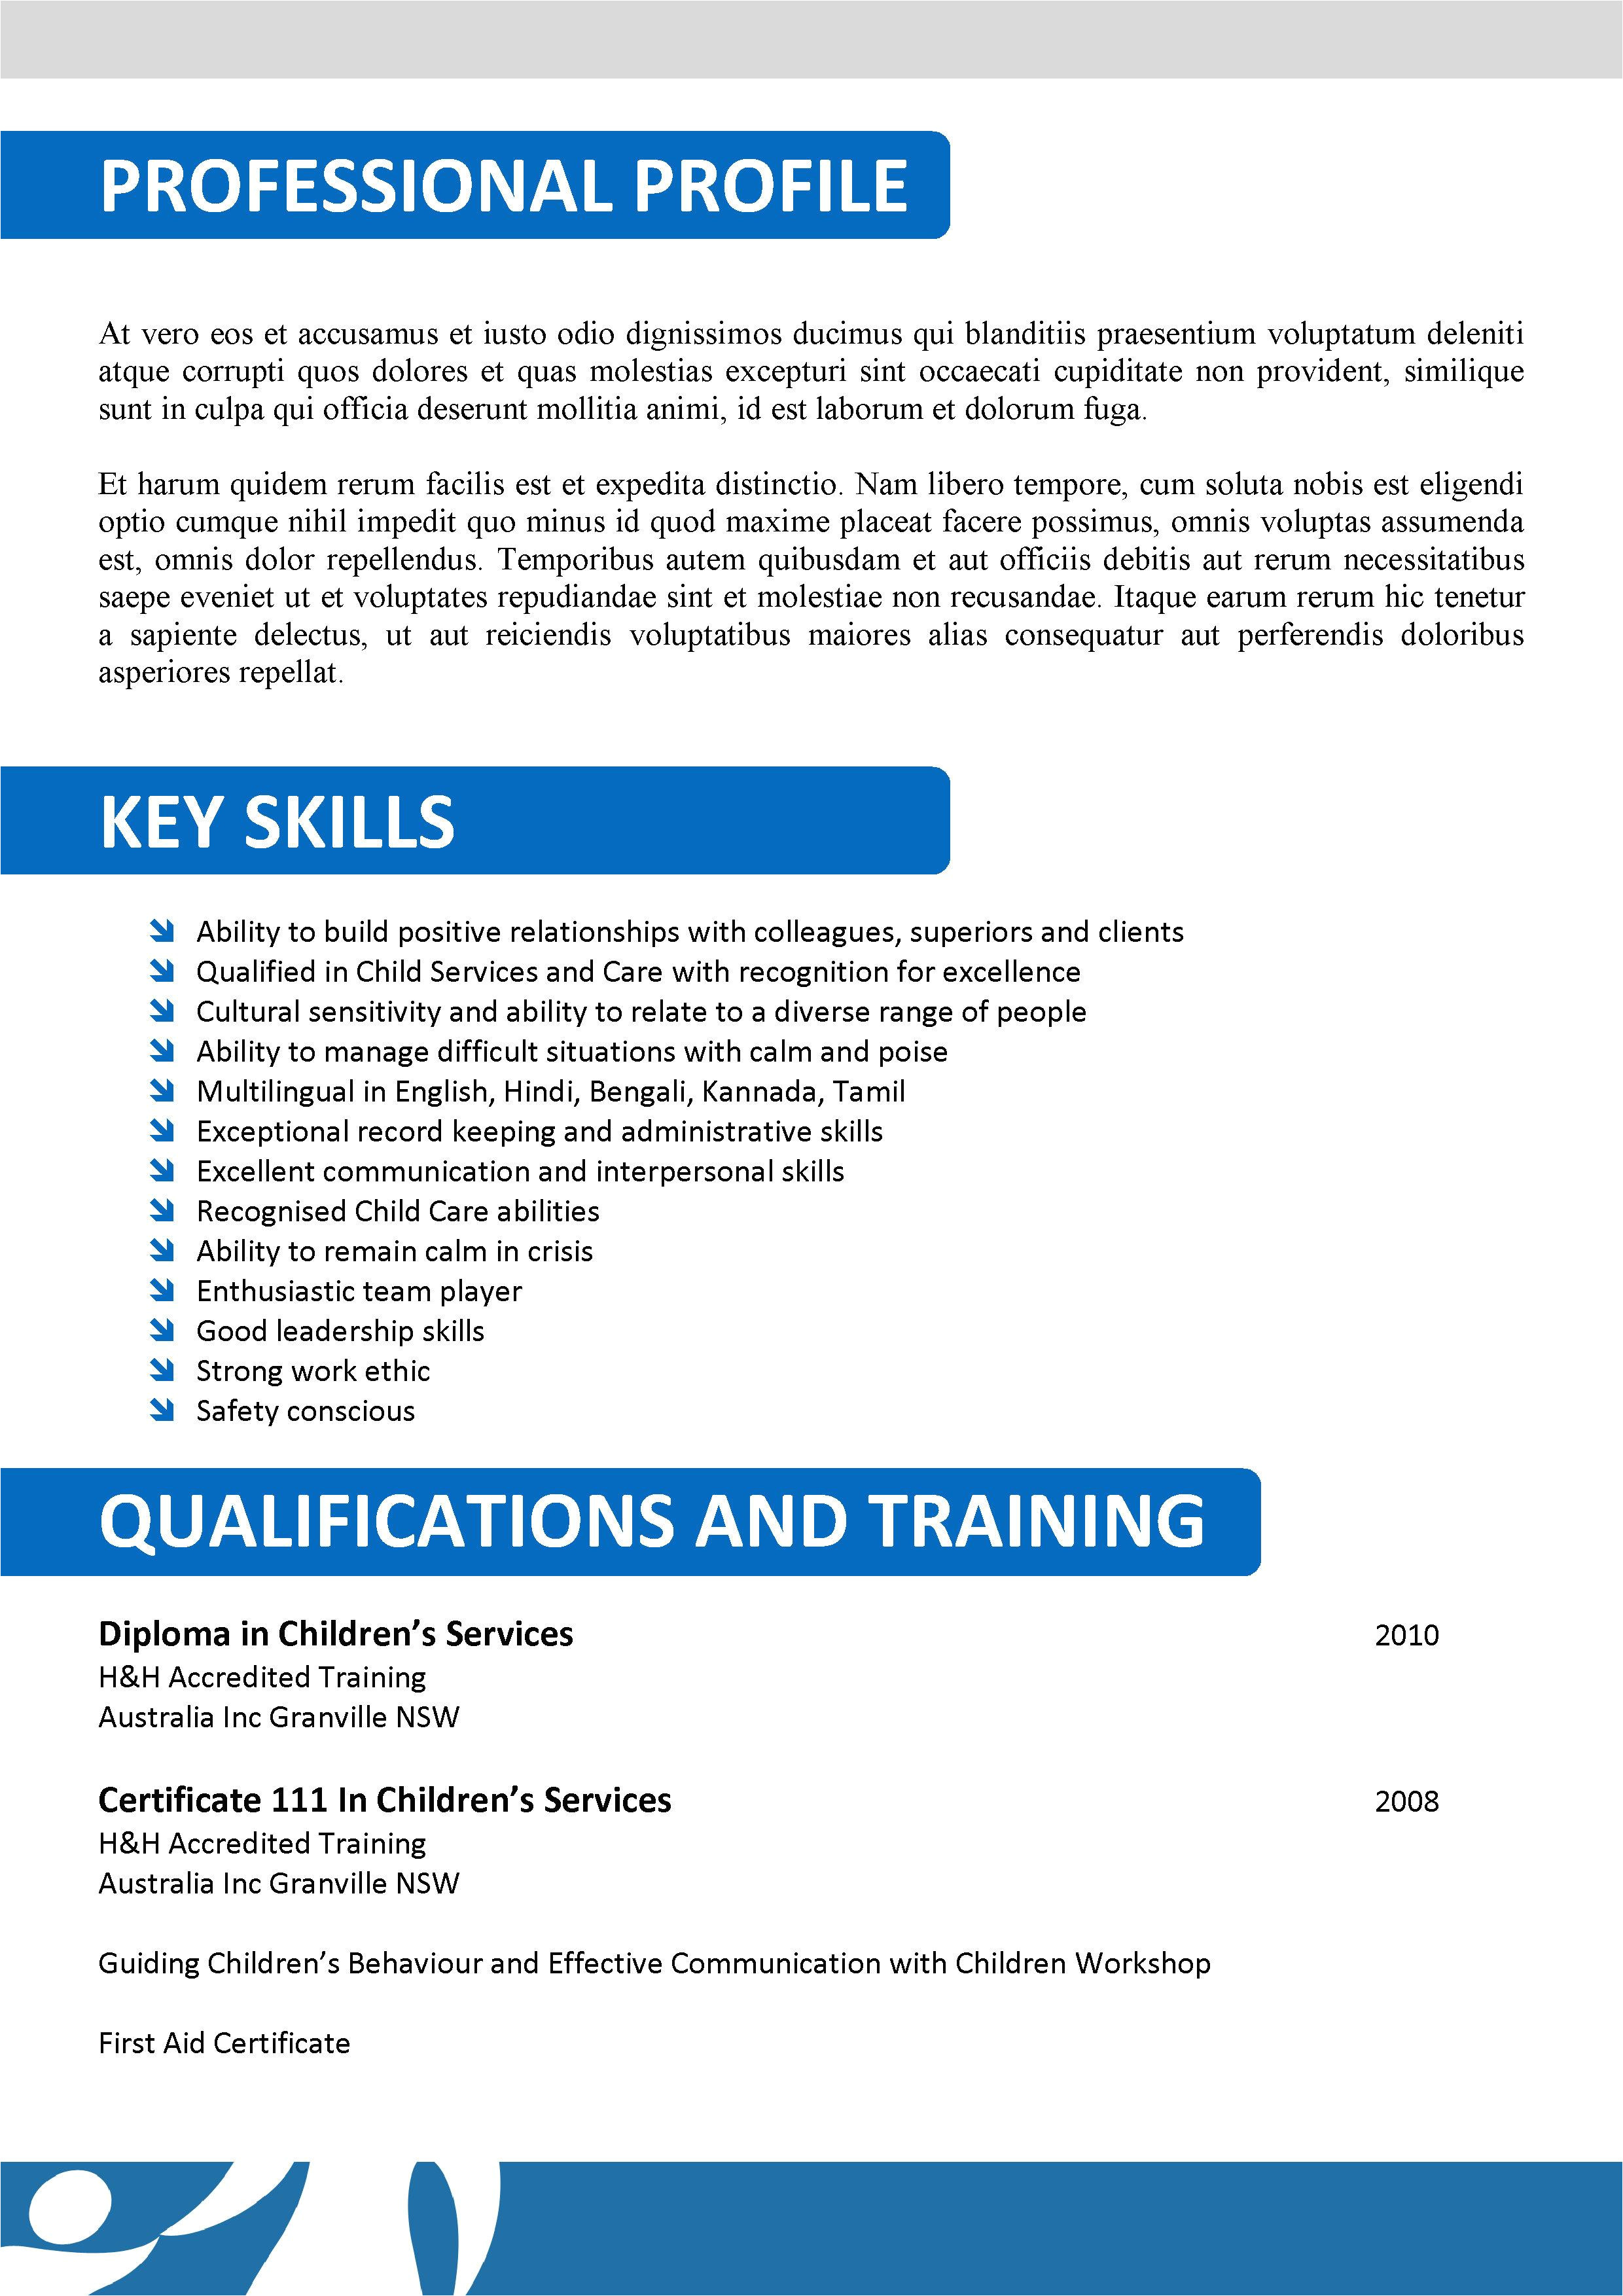 Sample Resume for Aged Care Worker Position We Can Help with Professional Resume Writing Resume